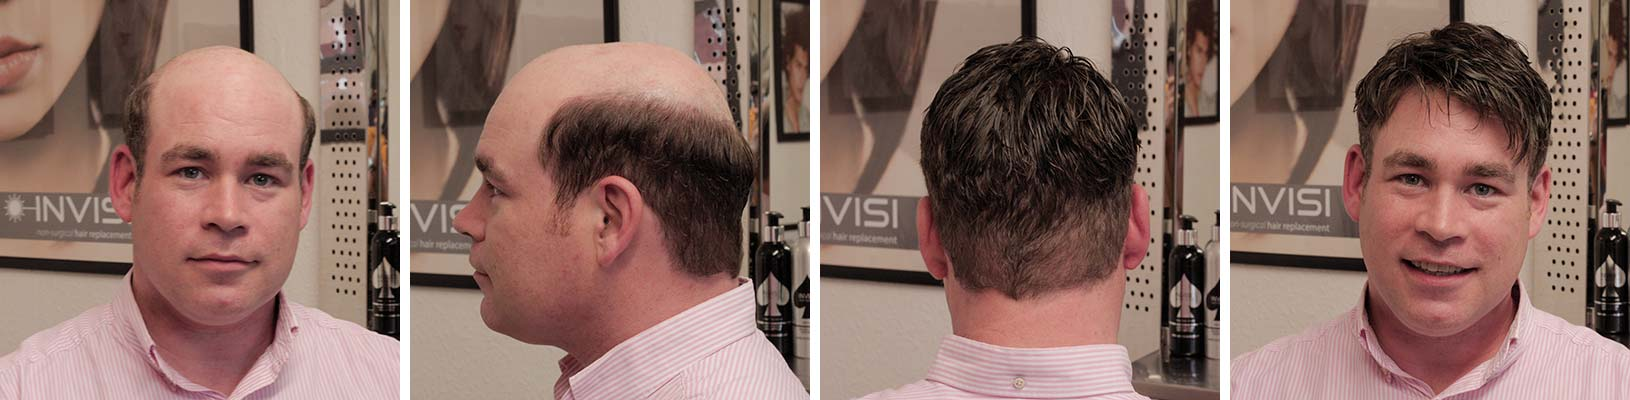 Invisi Before and After Pictures